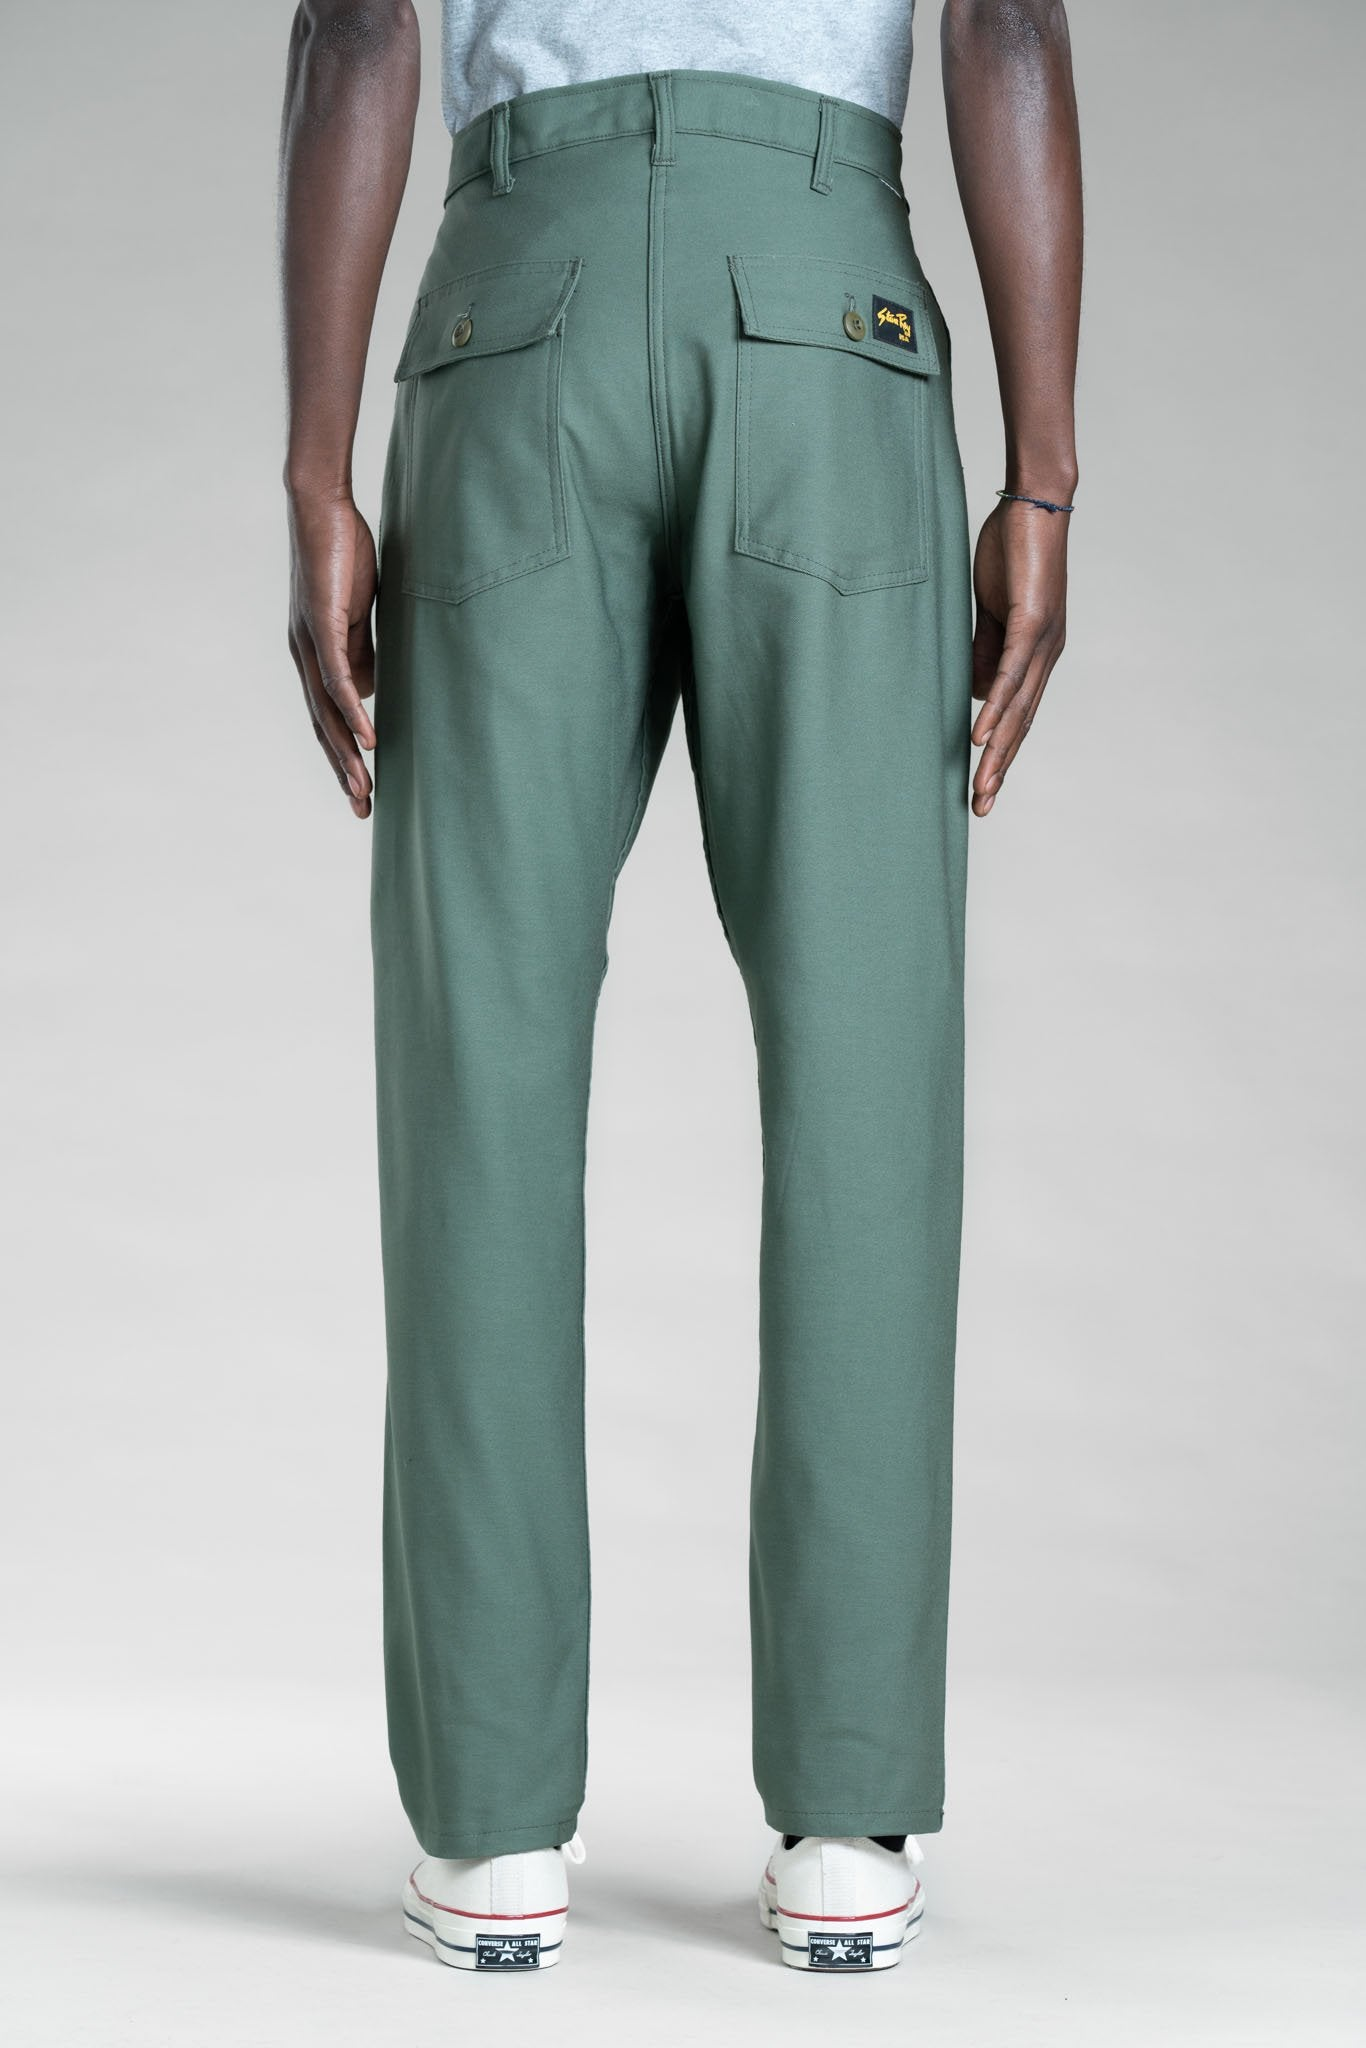 stan ray - slim fit fatigue pant 2